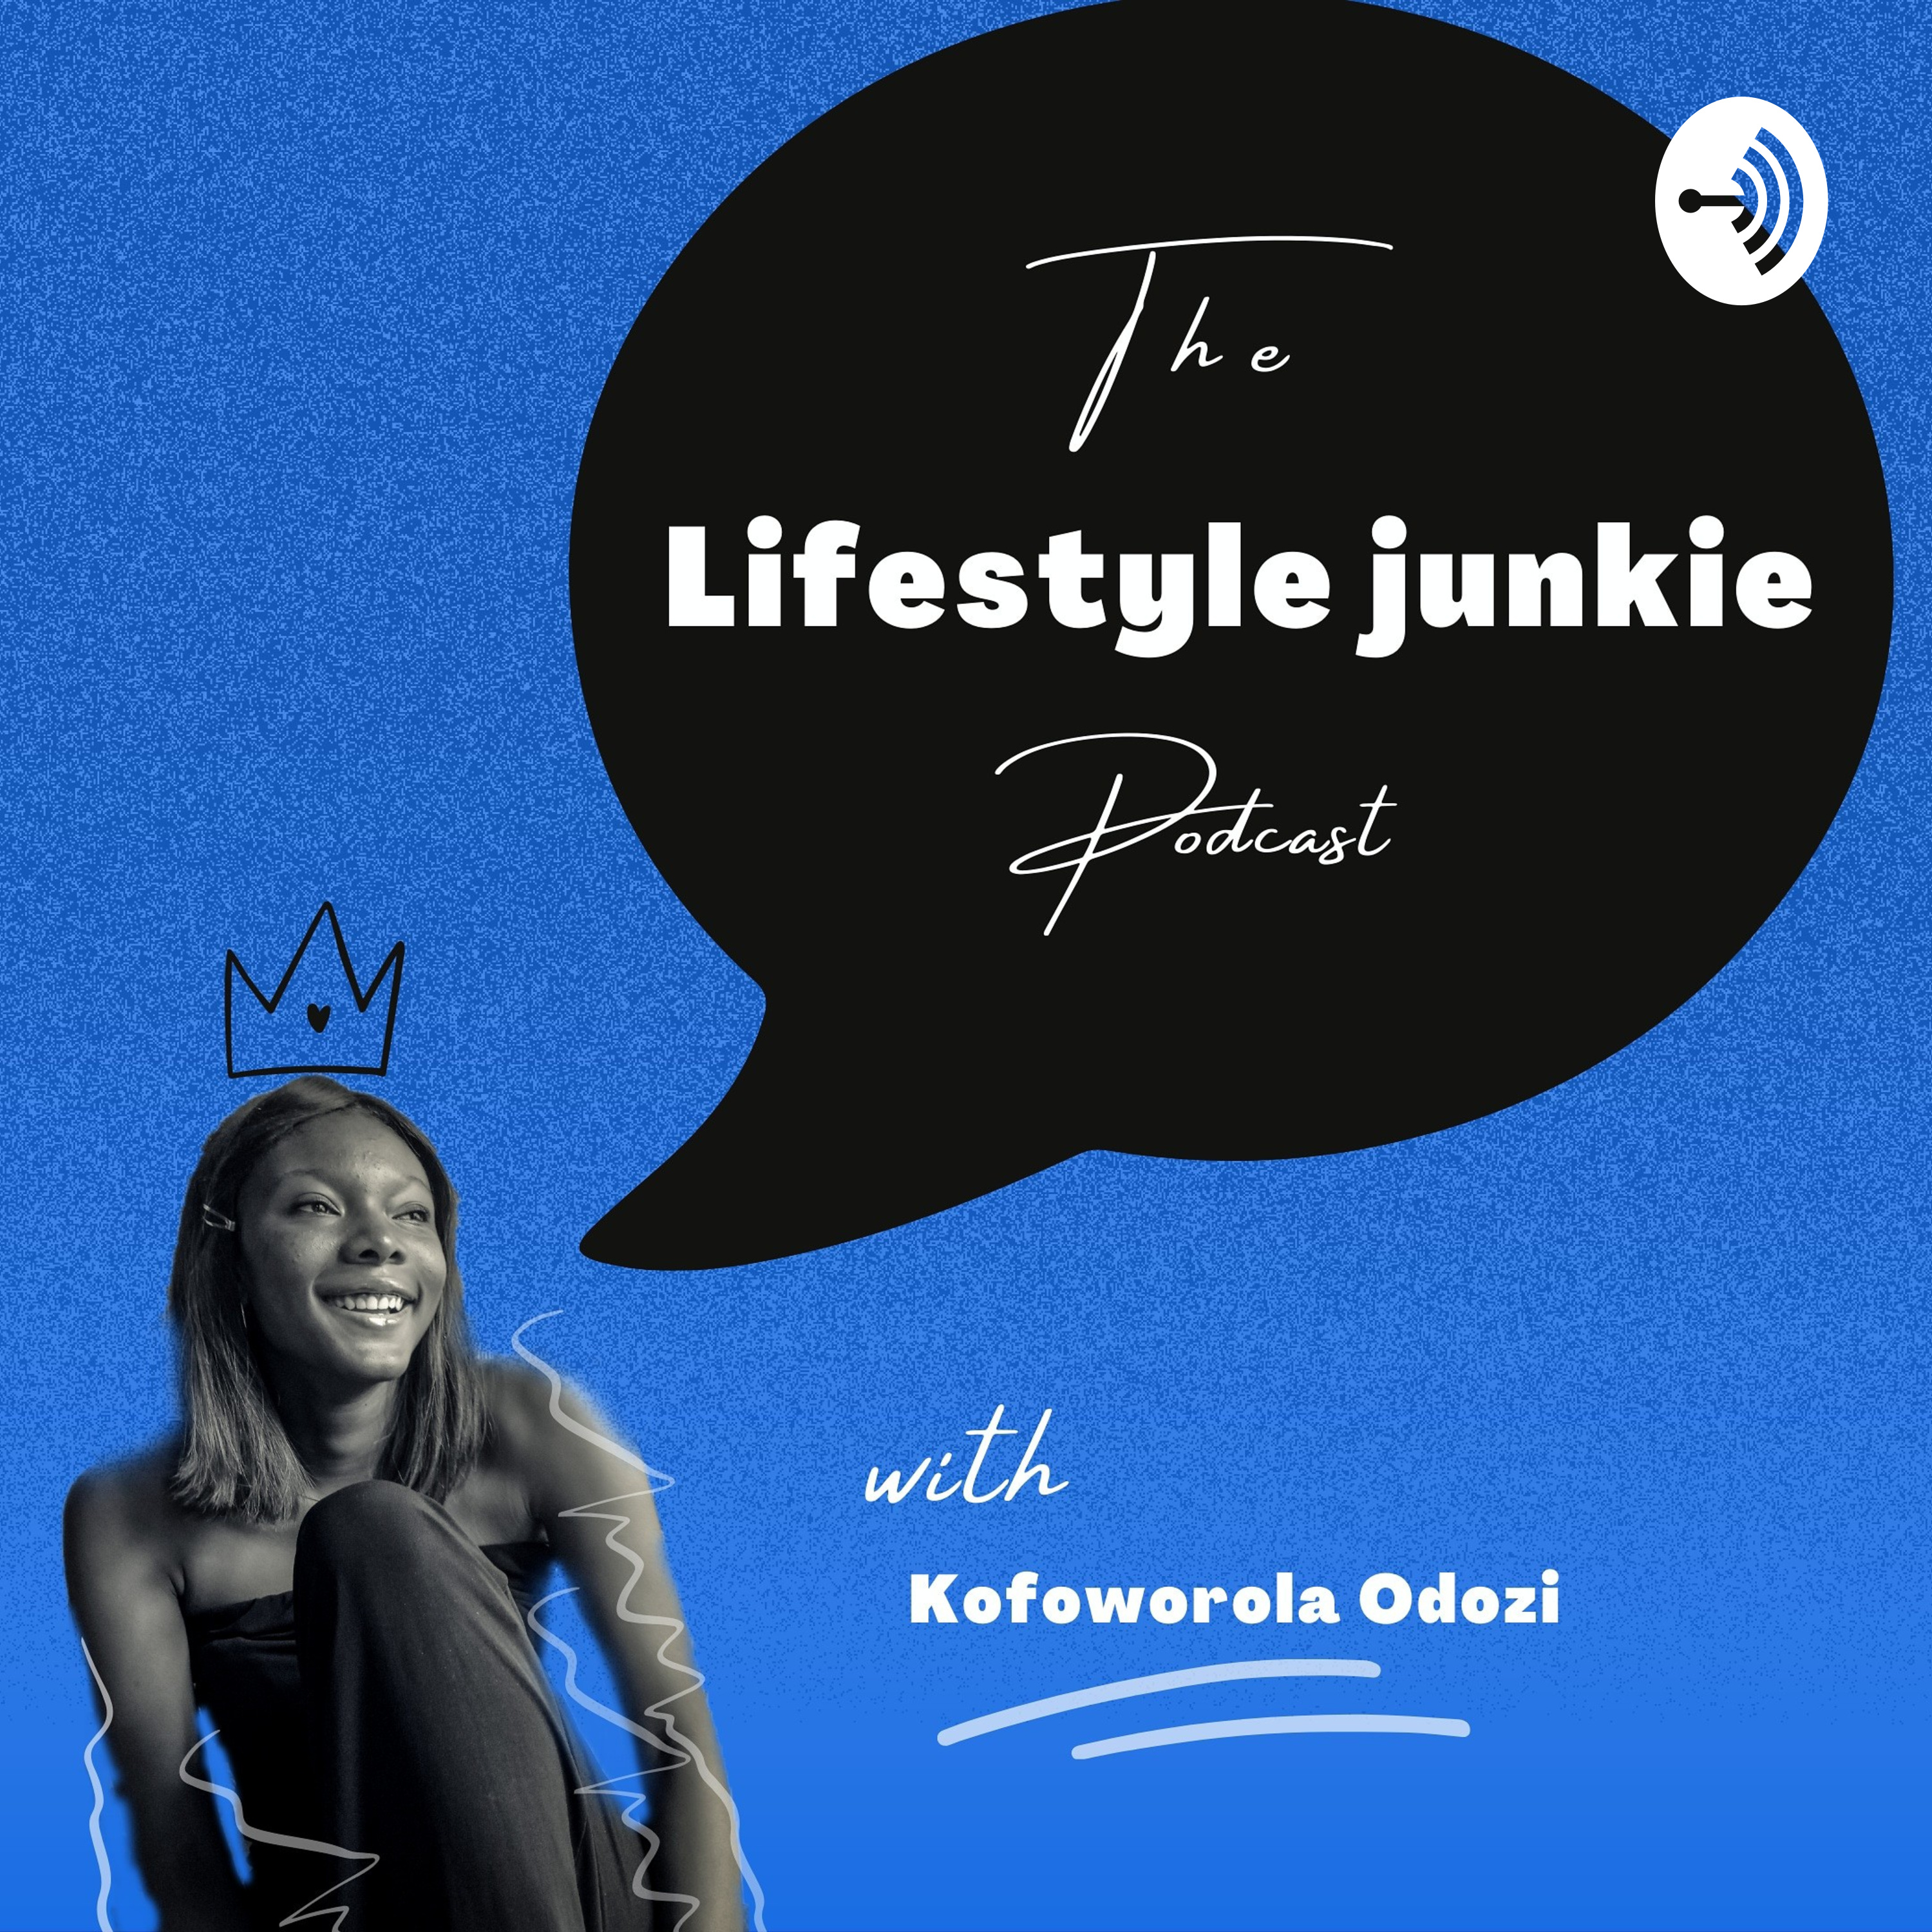 The Lifestyle Junkie